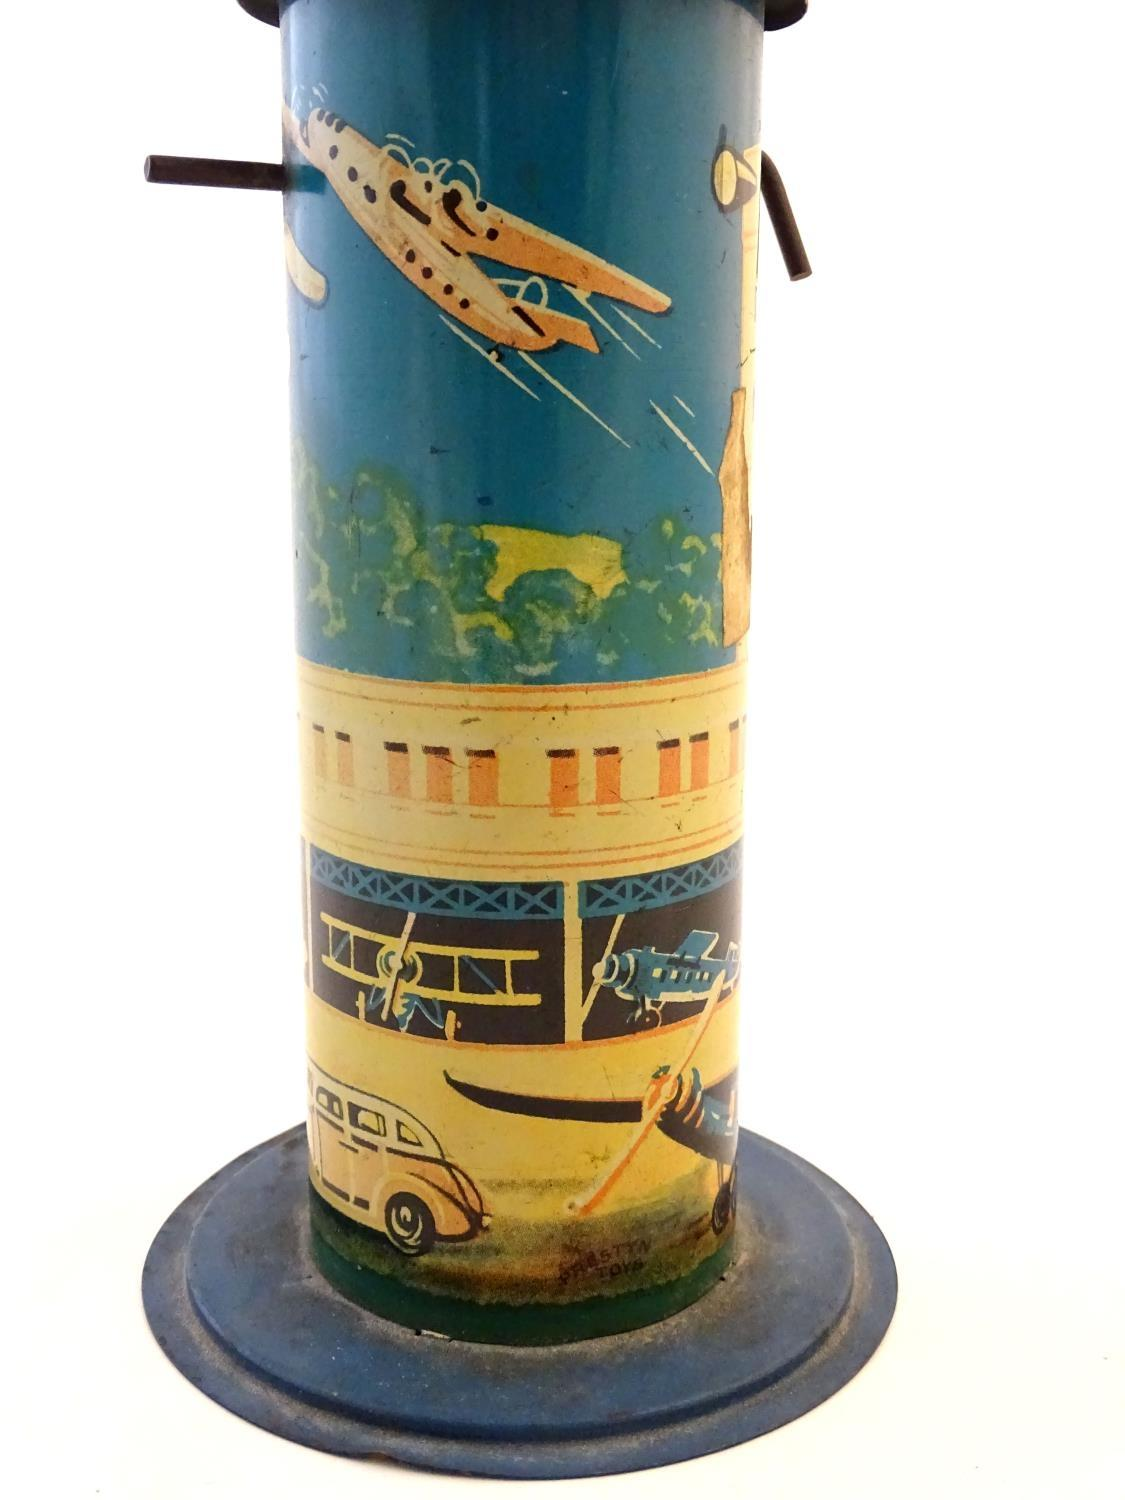 "Lot 527 - Toys: An early 20thC tin plate Tower Aeroplane / airplane by Louis Marx & Co. Approx. 8 1/2"" high."